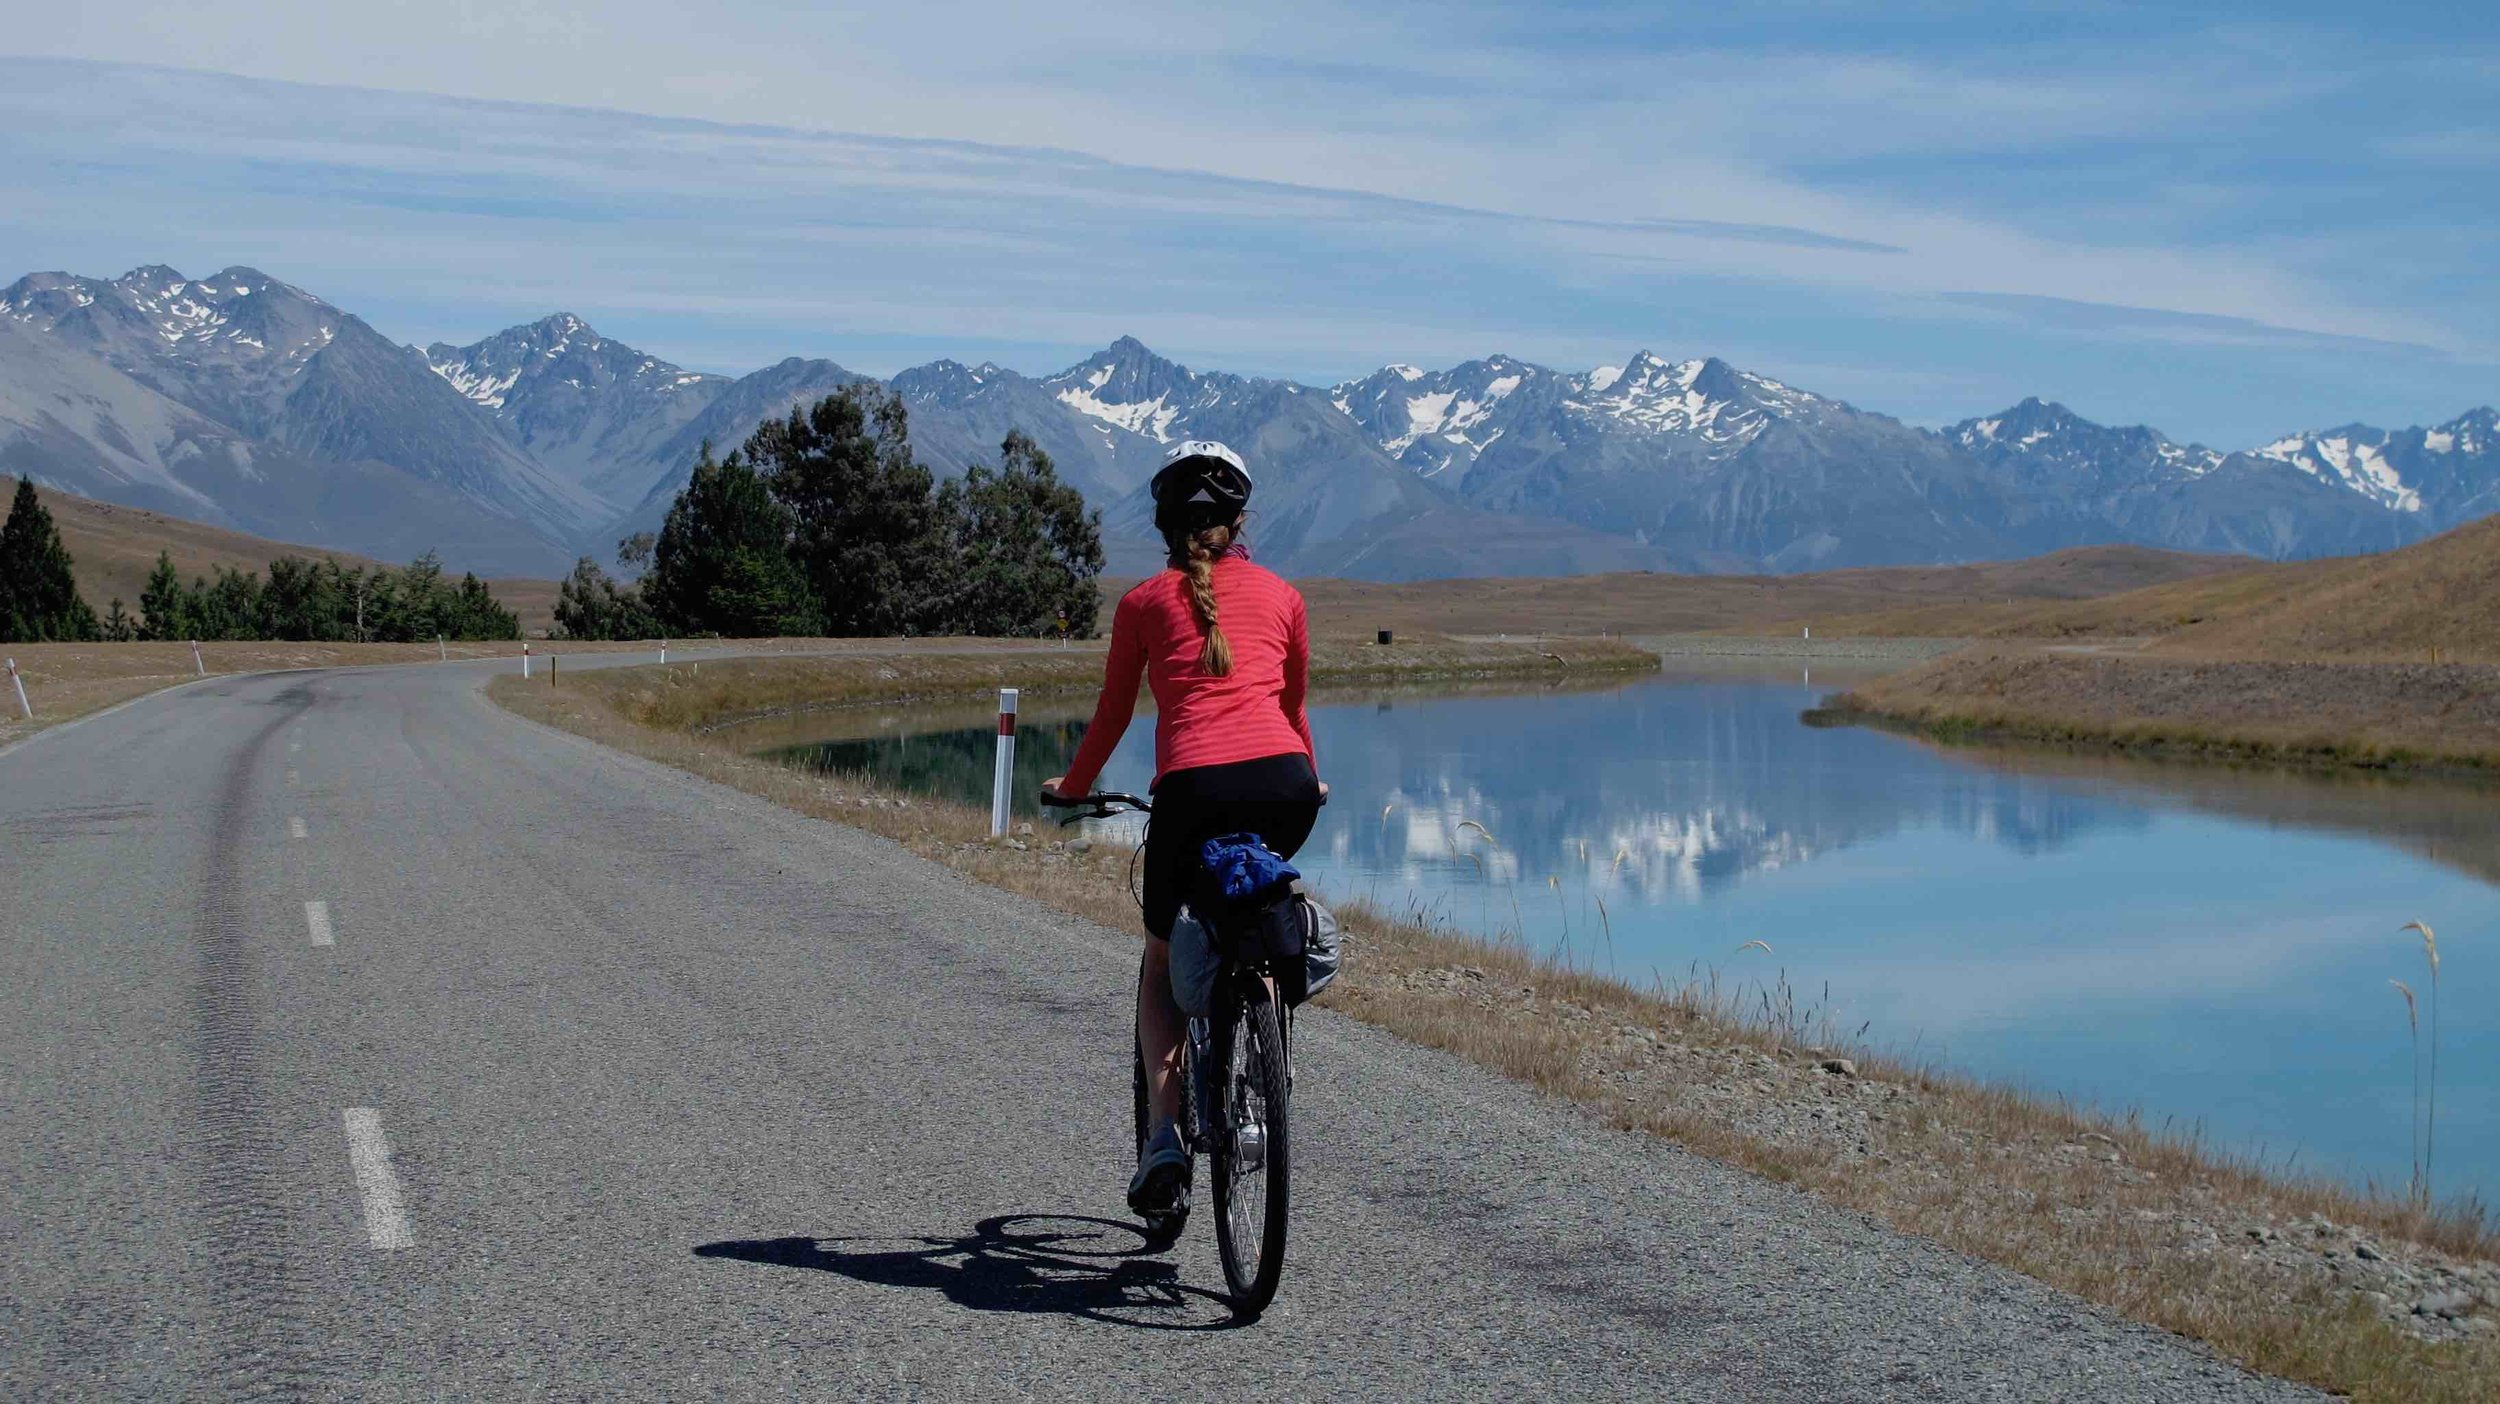 Summer New Zealand Biking arount Mount Cook Lake Tekapo.jpg